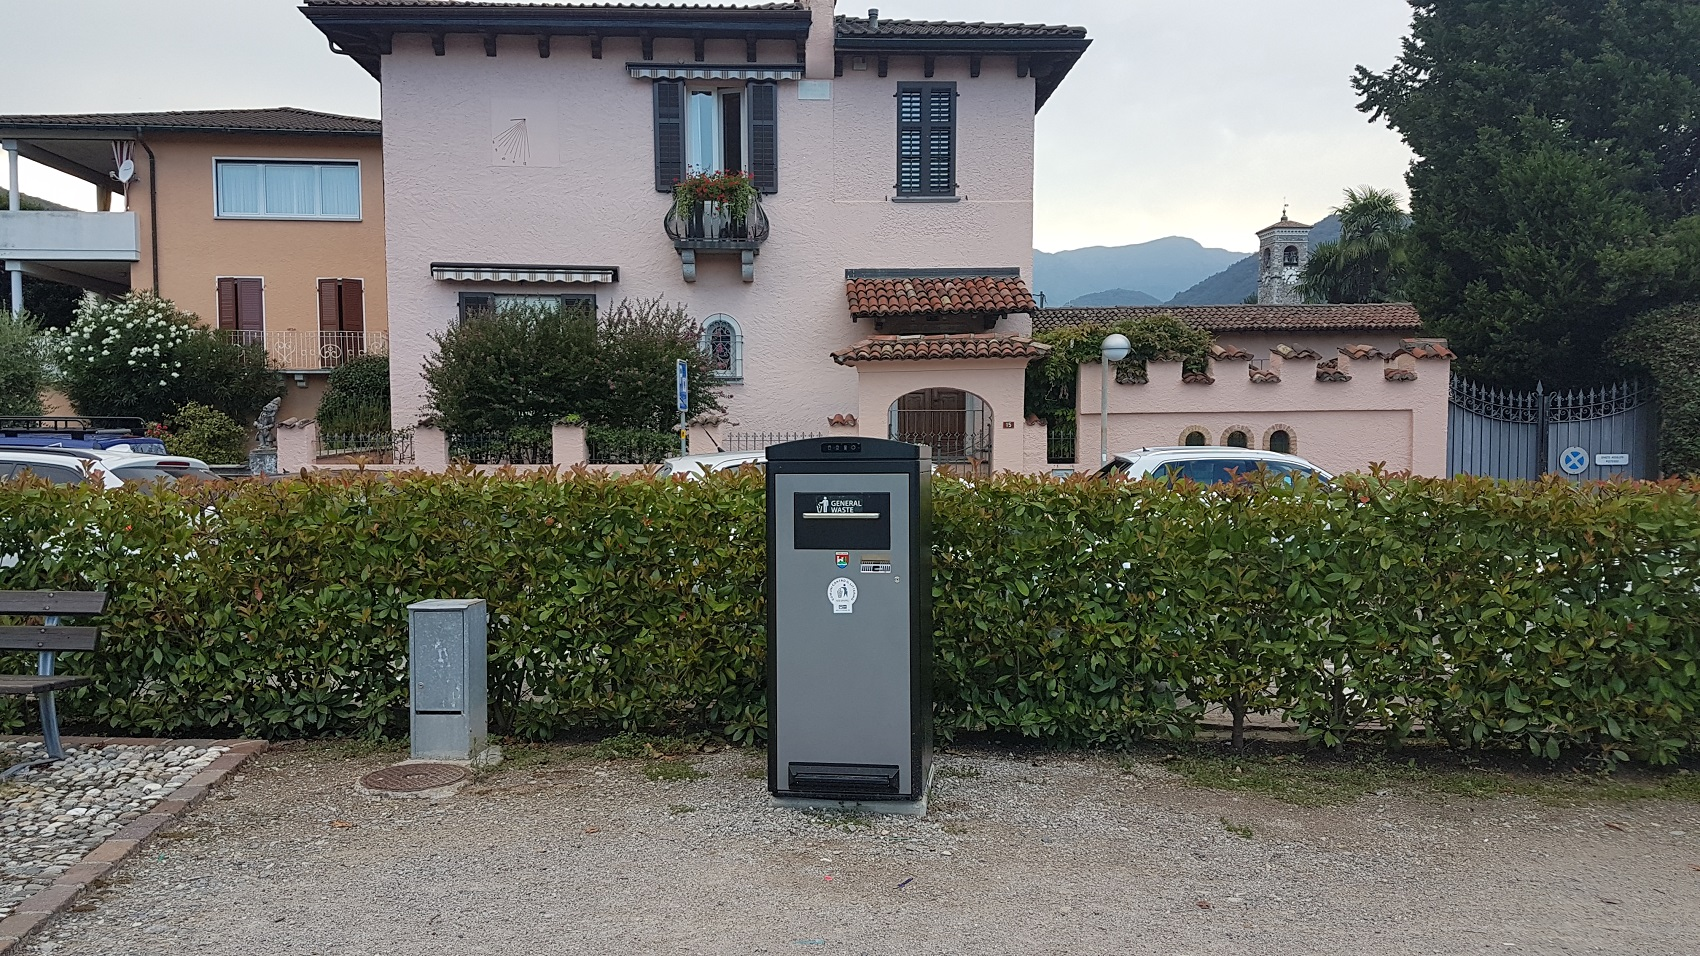 Solar-powered trash compactor bin in Caslano, Switzerland